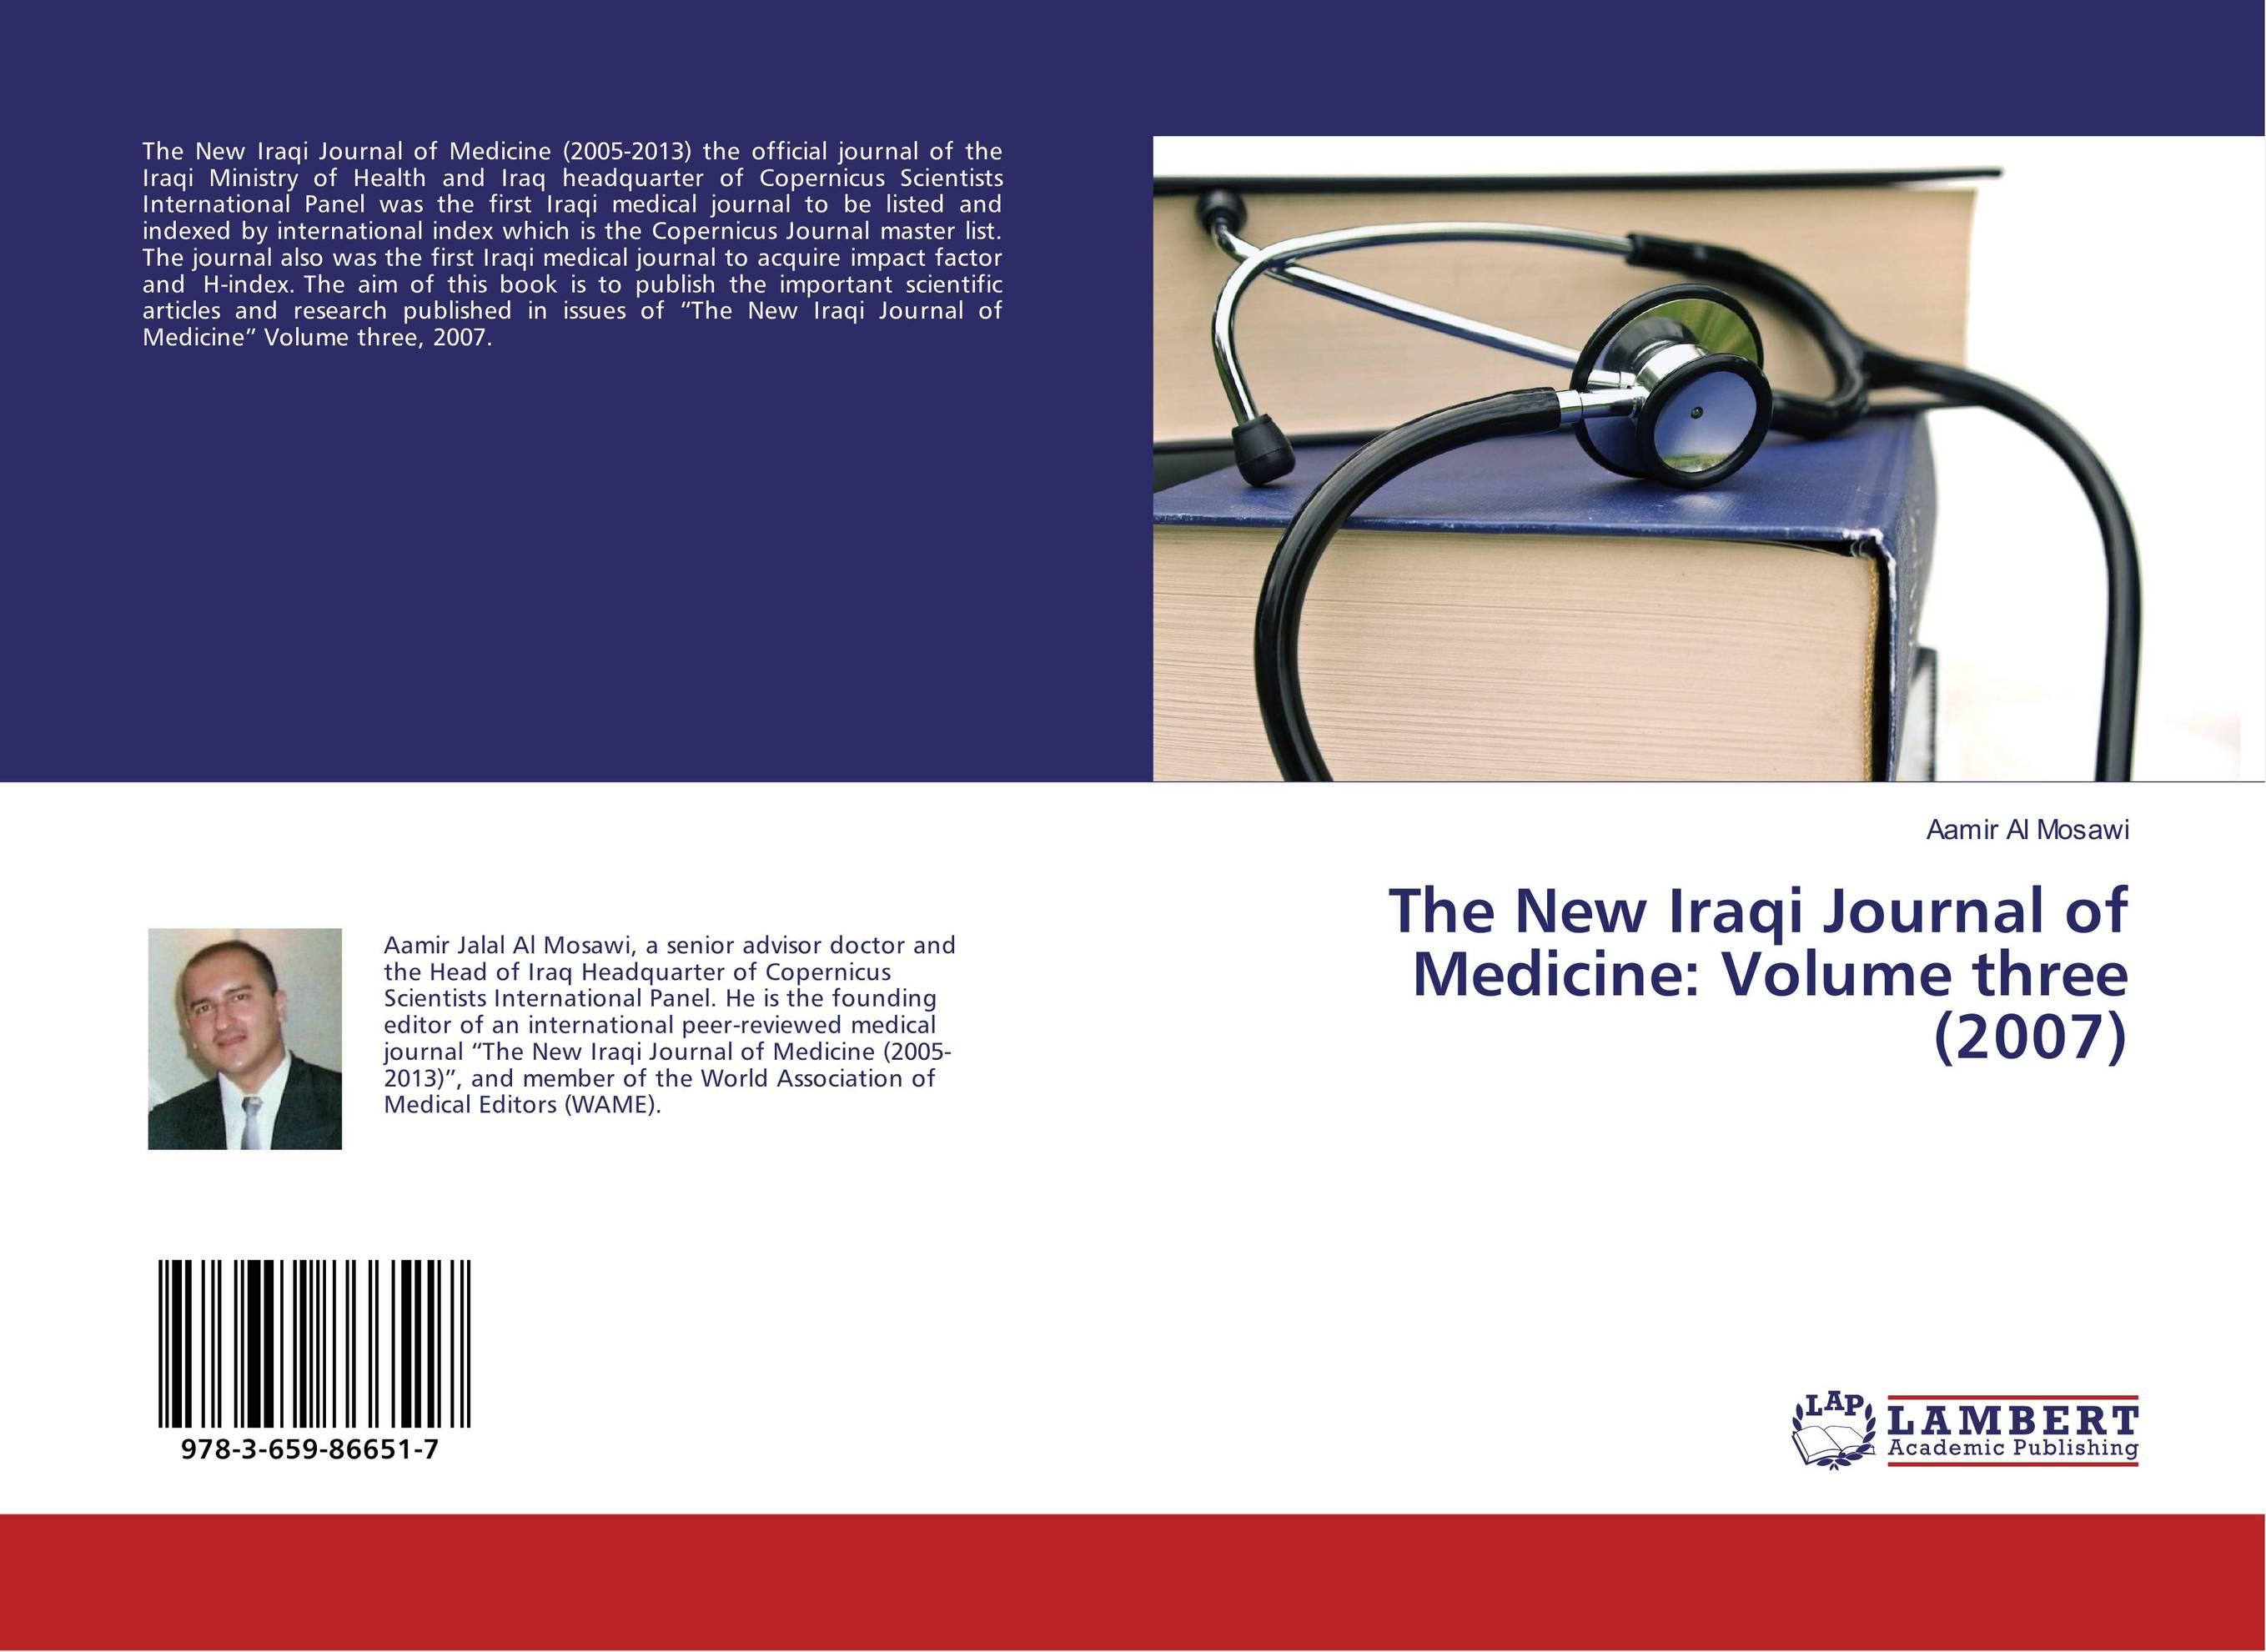 The New Iraqi Journal of Medicine: Volume three (2007) te0192 garner 2005 international year of physics einstein 5 new stamps 0405